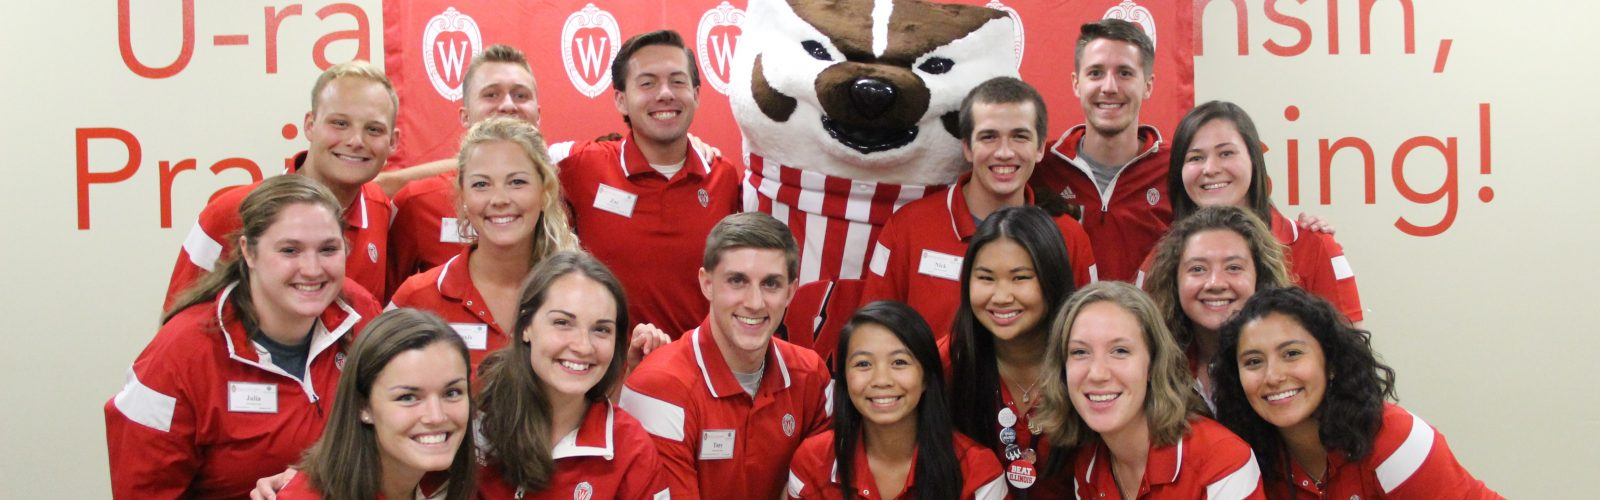 Information and Tour Guides pose with Bucky at the Sunburst Festival.